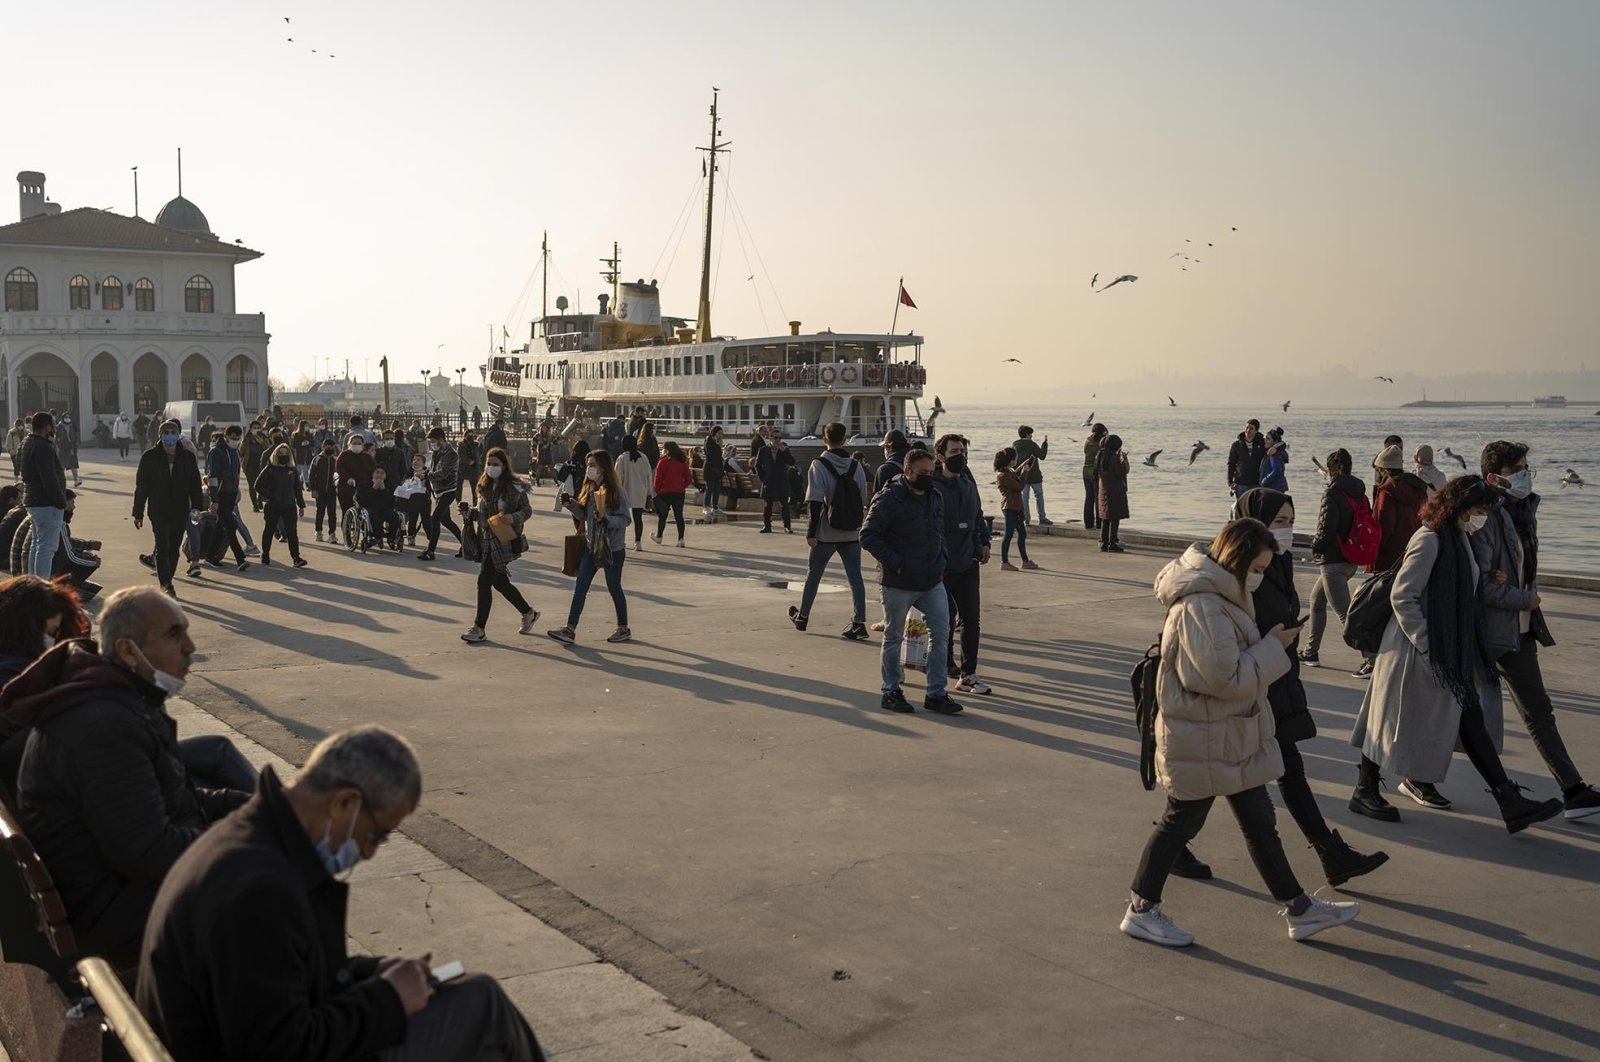 People wearing protective masks against the coronavirus spread walk by the seaside in Kadıköy district, Istanbul, Turkey, Feb. 23, 2021. (Photo by Getty Images)